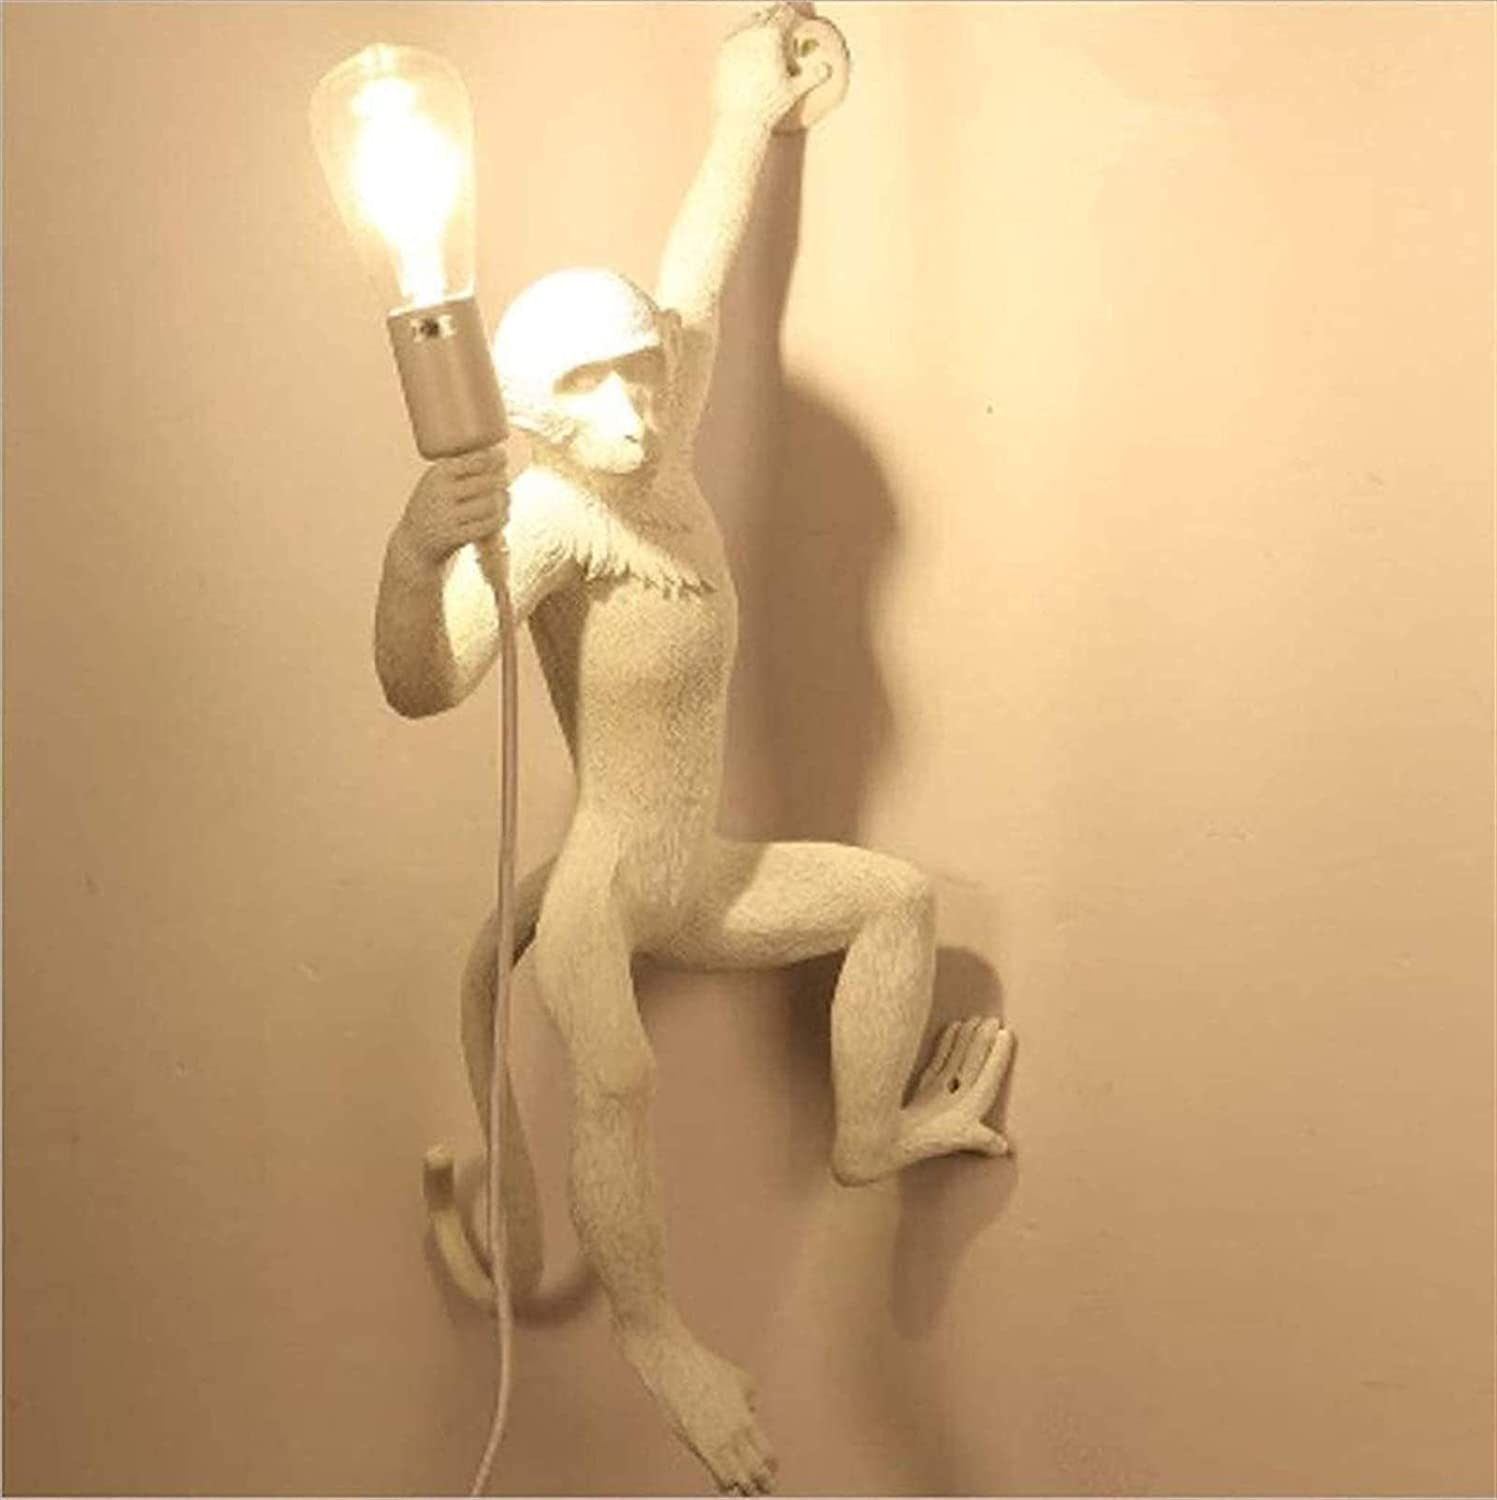 Industrial 70% OFF Outlet Wall Lights Houston Mall Pendant Light Chandelier Monkey Lamp Led